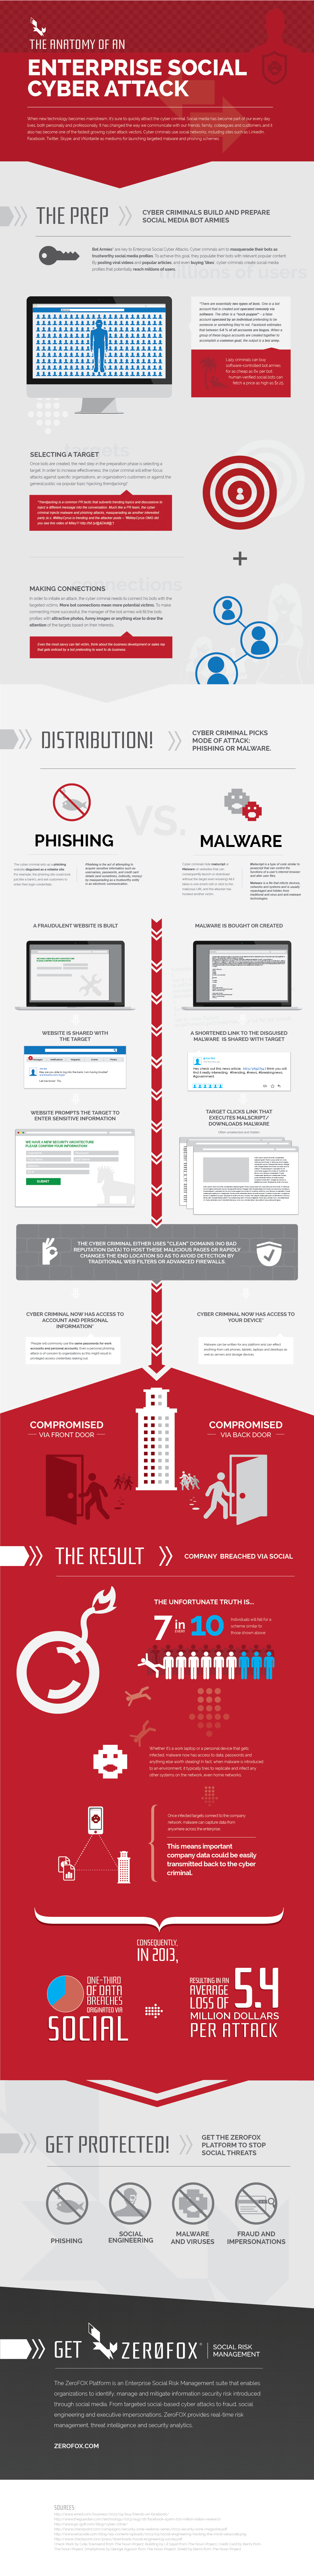 Anatomy of an Enterprise Social Cyber Attack